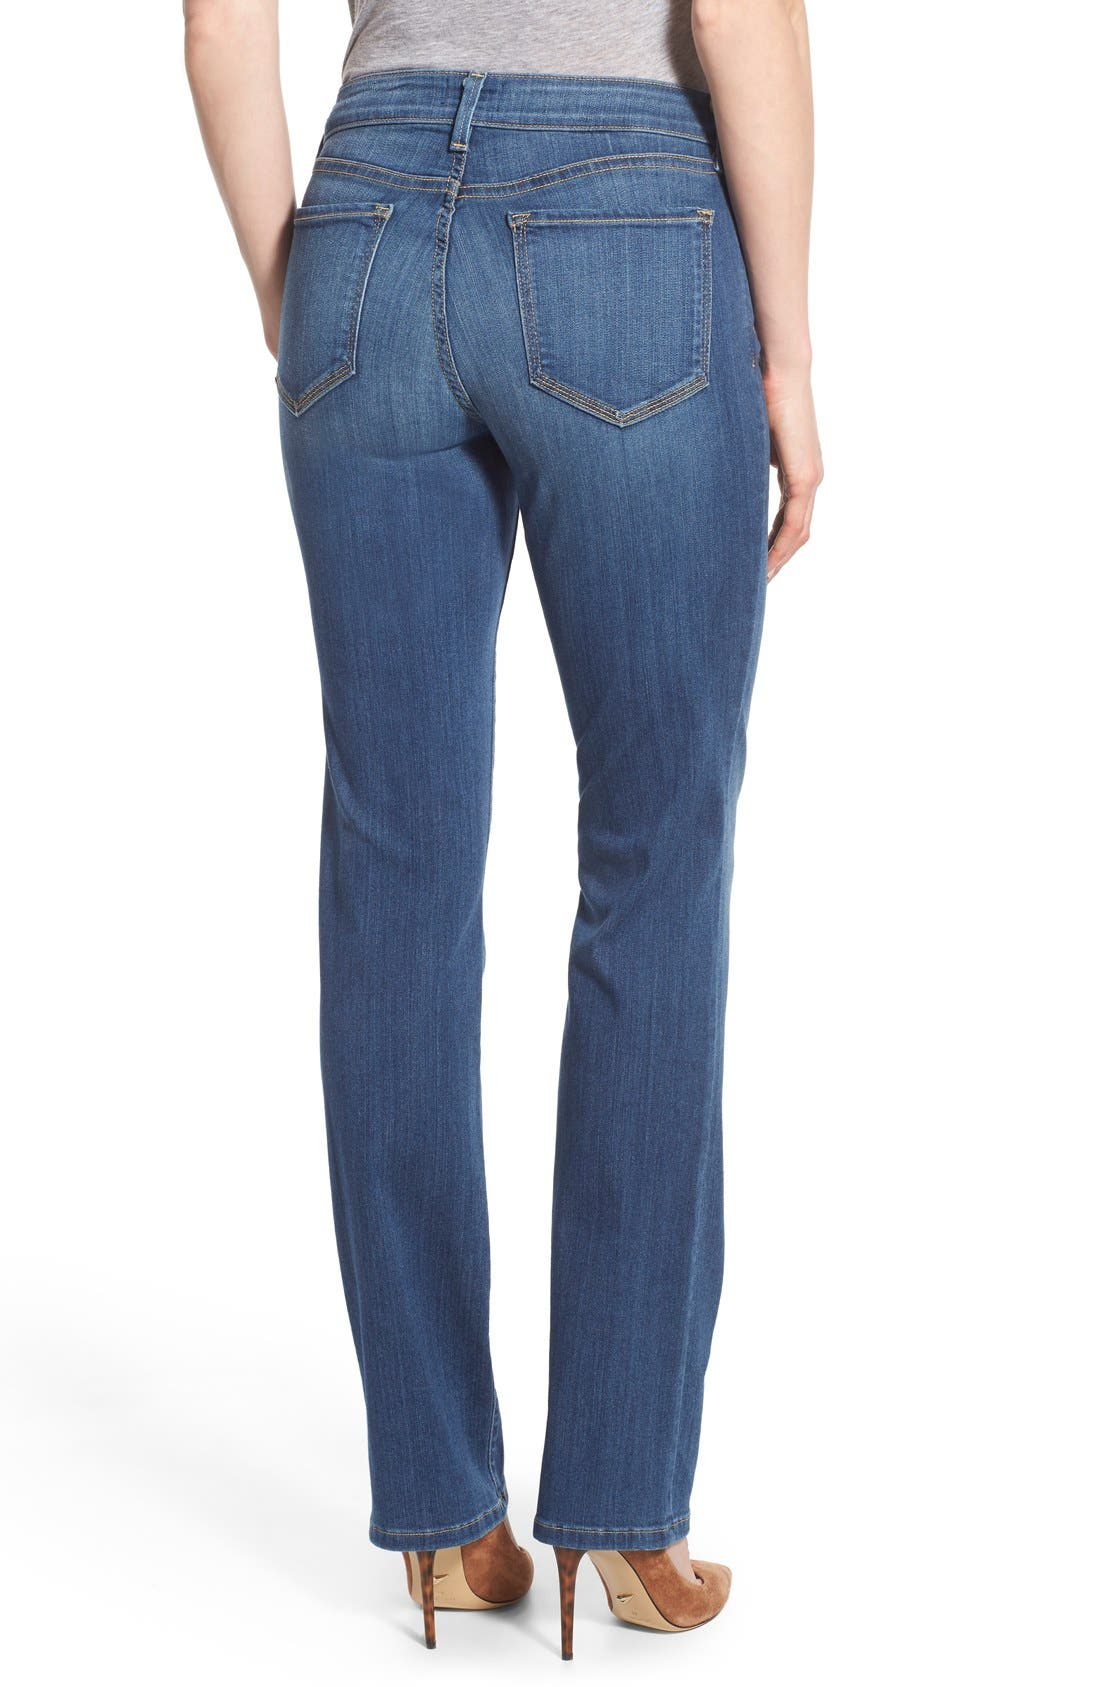 'Marilyn' Stretch Straight Leg Jeans,                             Alternate thumbnail 2, color,                             Anderson